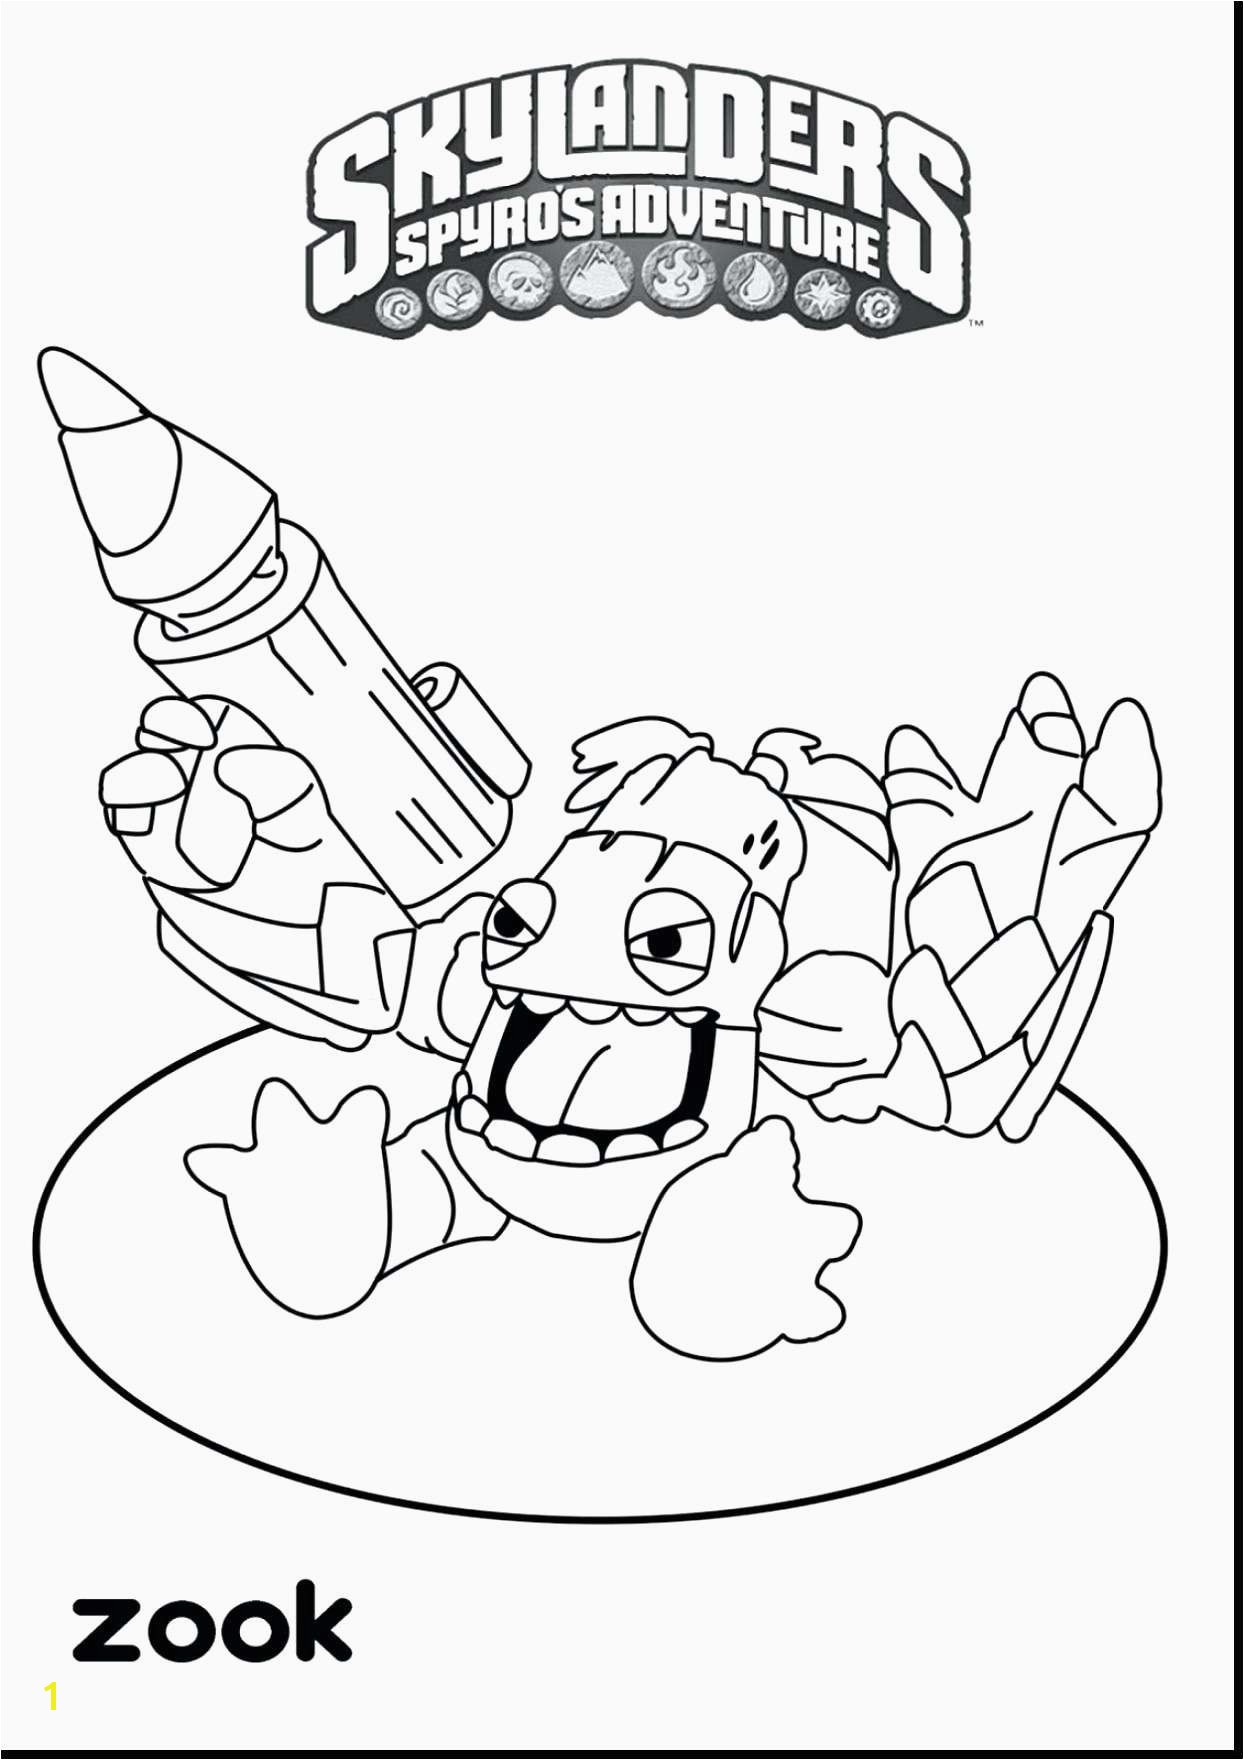 Aladdin and Jasmine Coloring Pages Jasmine Coloring Pages Princess Coloring Pages Jasmine Free Coloring